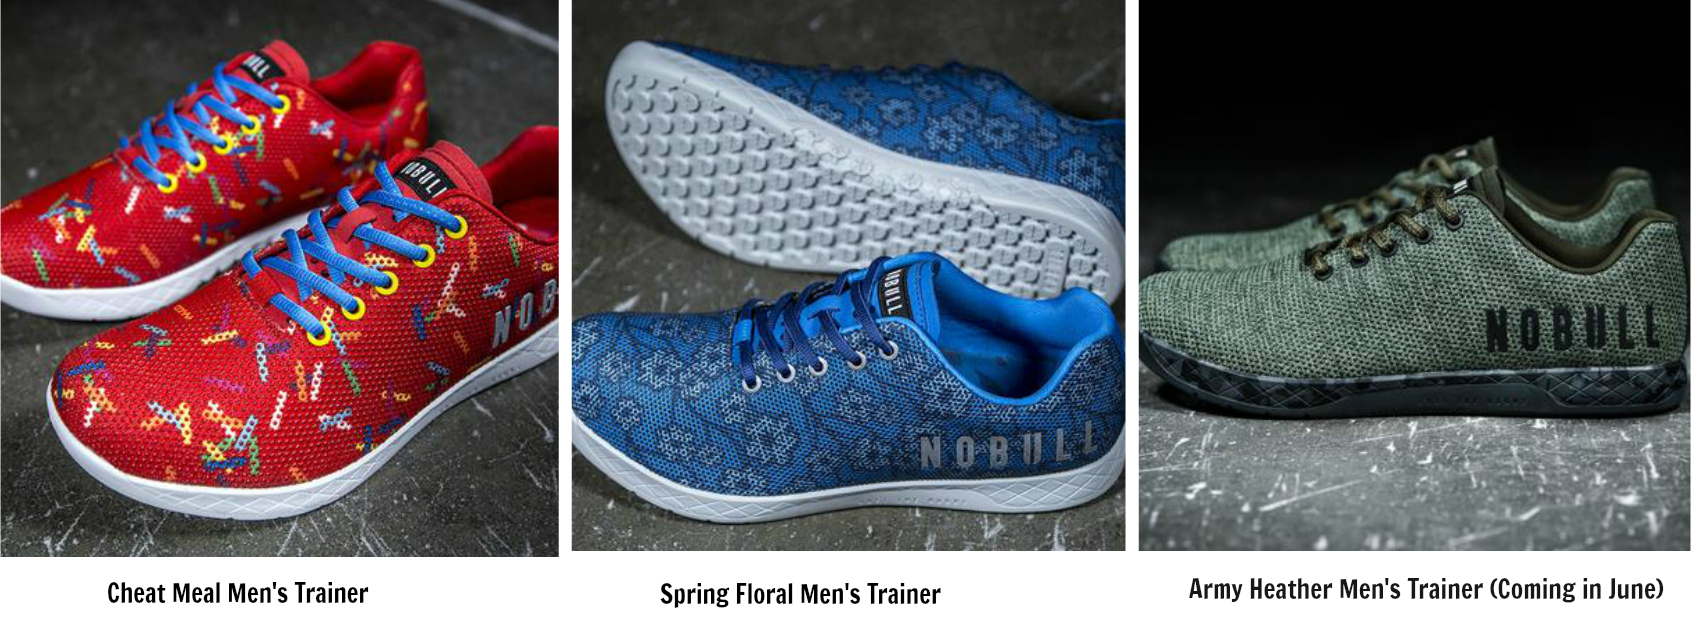 0e78a0ebd18b NOBULL Women s Shoes Brings Fitness to a New Level